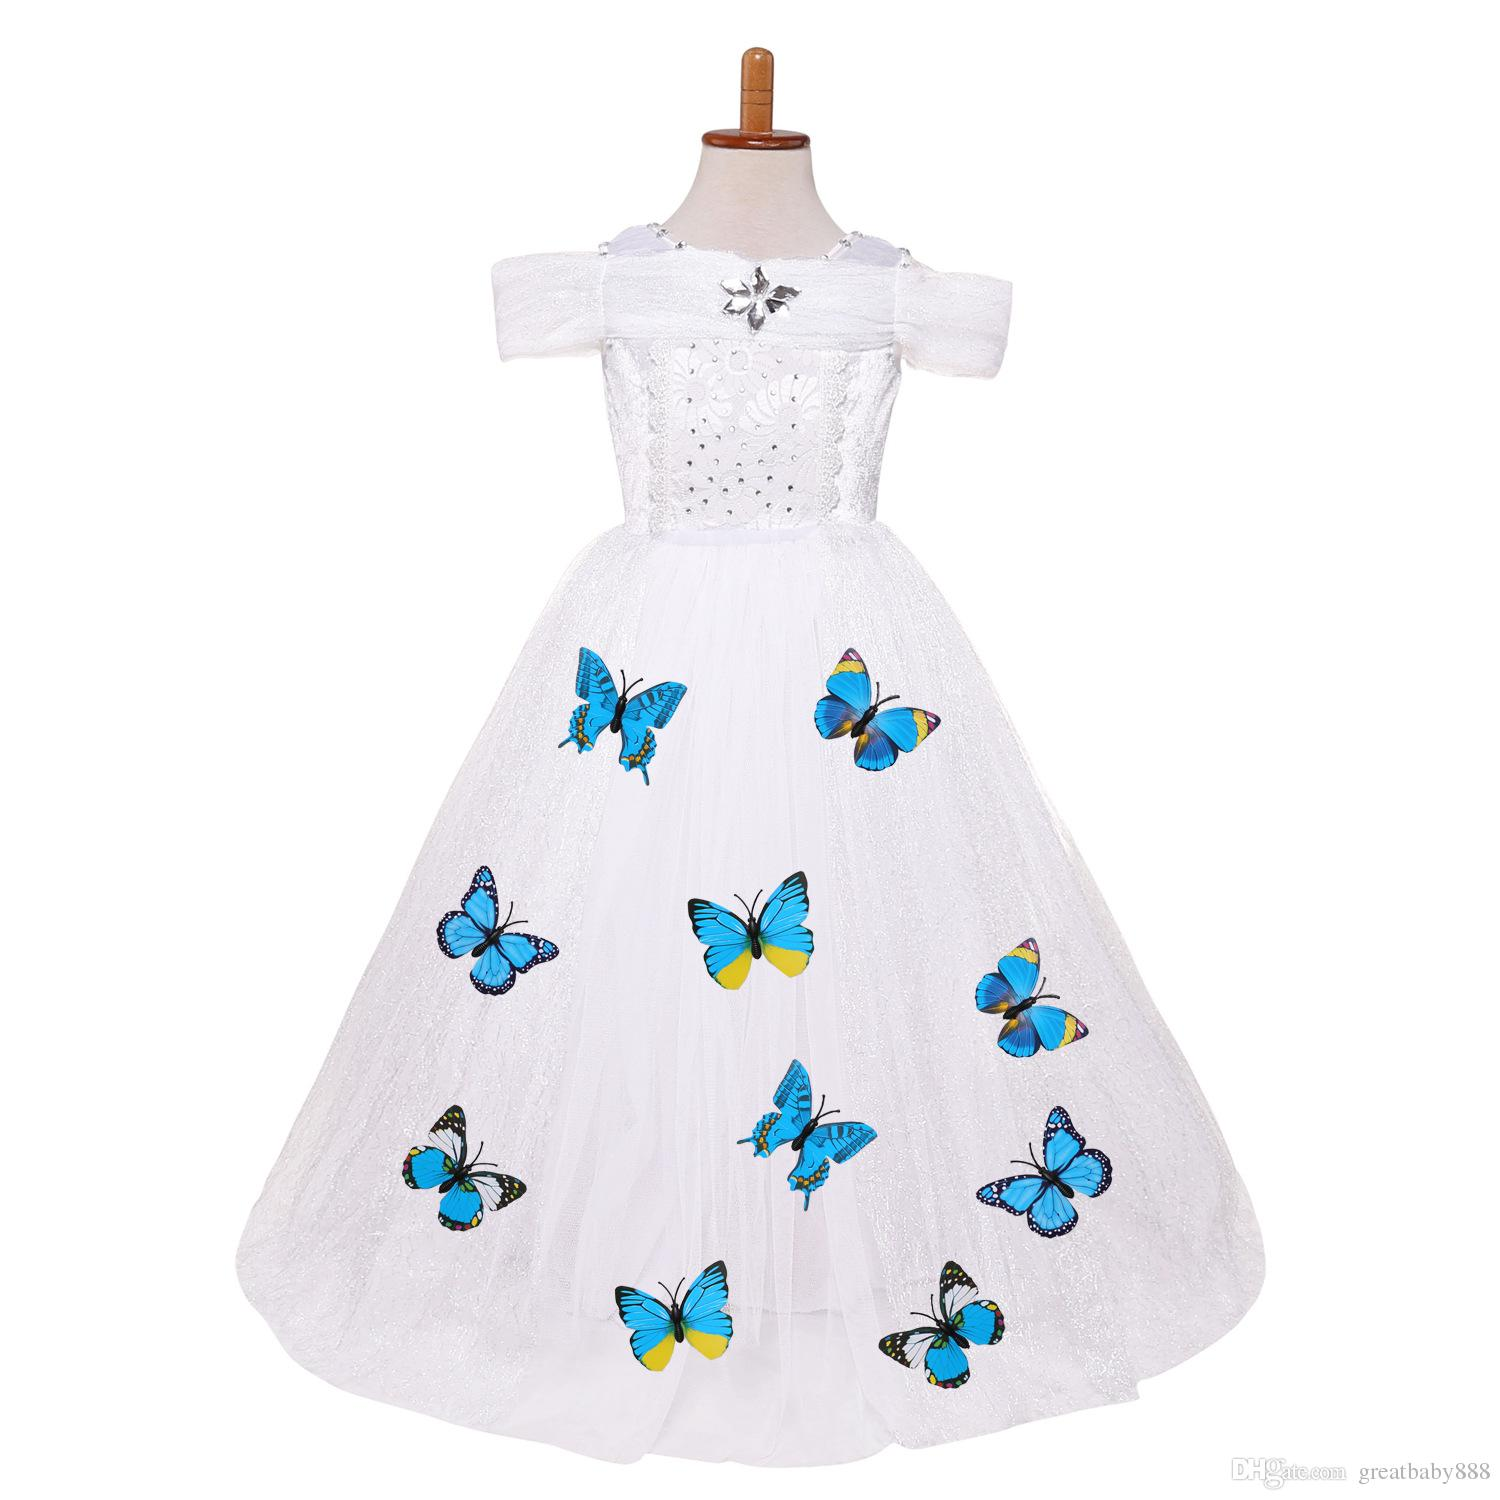 4 colos Baby Girls butterfly lace Dress Christmas Tutu princess Dresses Kids snowflake diamond Party Dress C2787